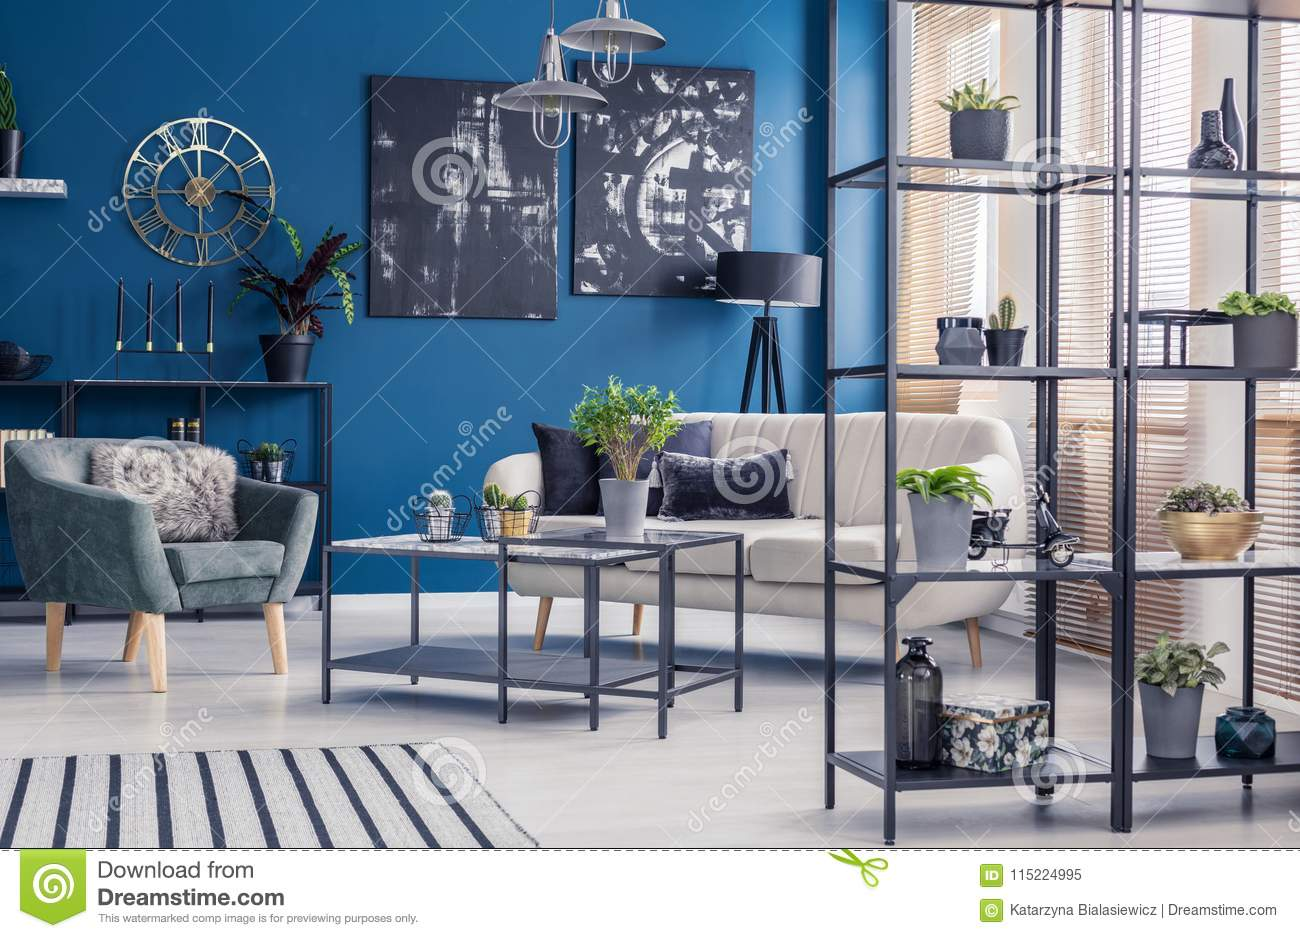 Picture of: Navy Blue Living Room Interior Stock Image Image Of Elegant Room 115224995